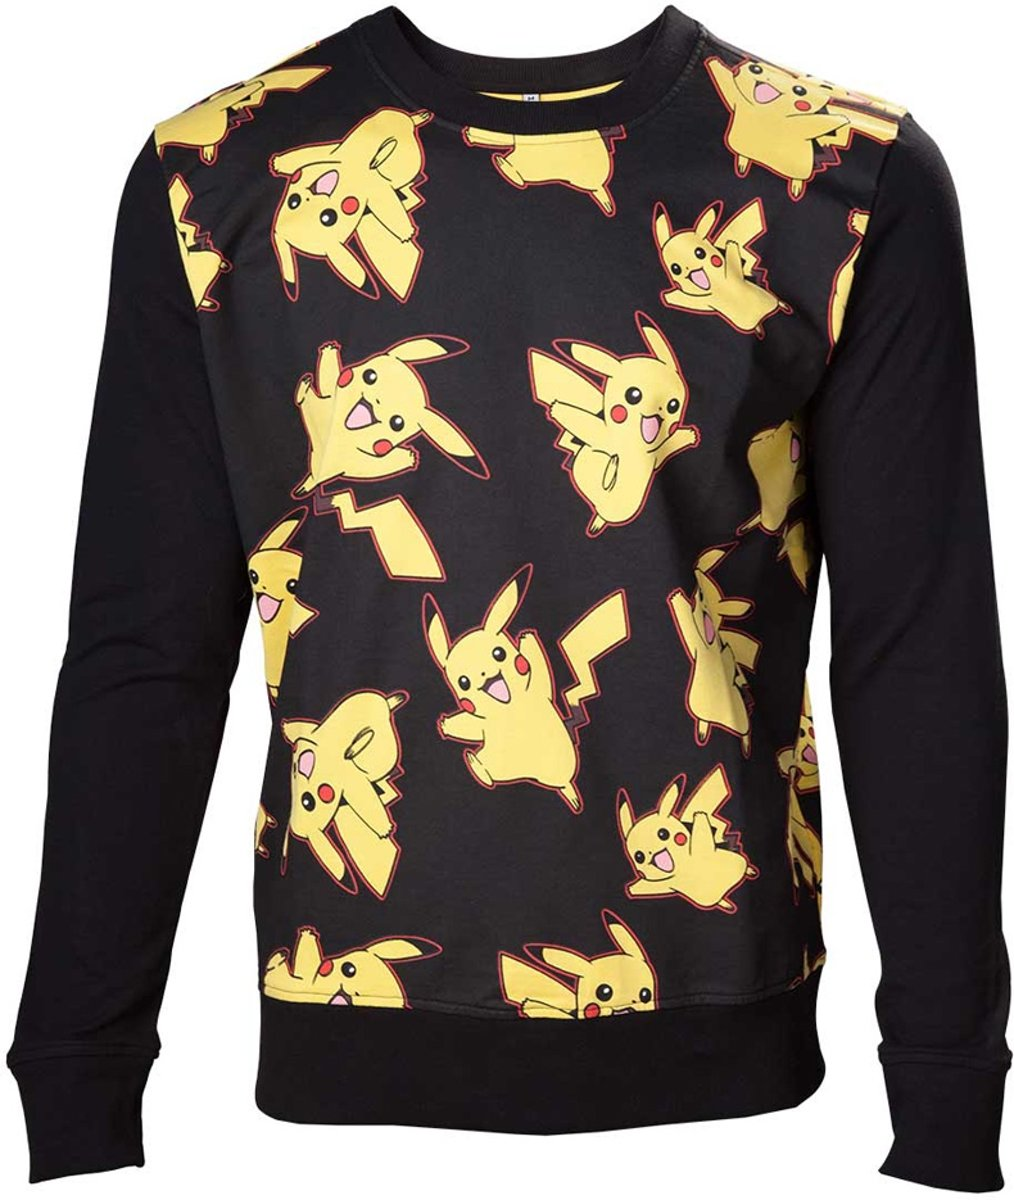 Pokemon - Pikachu All Over Print Sweater